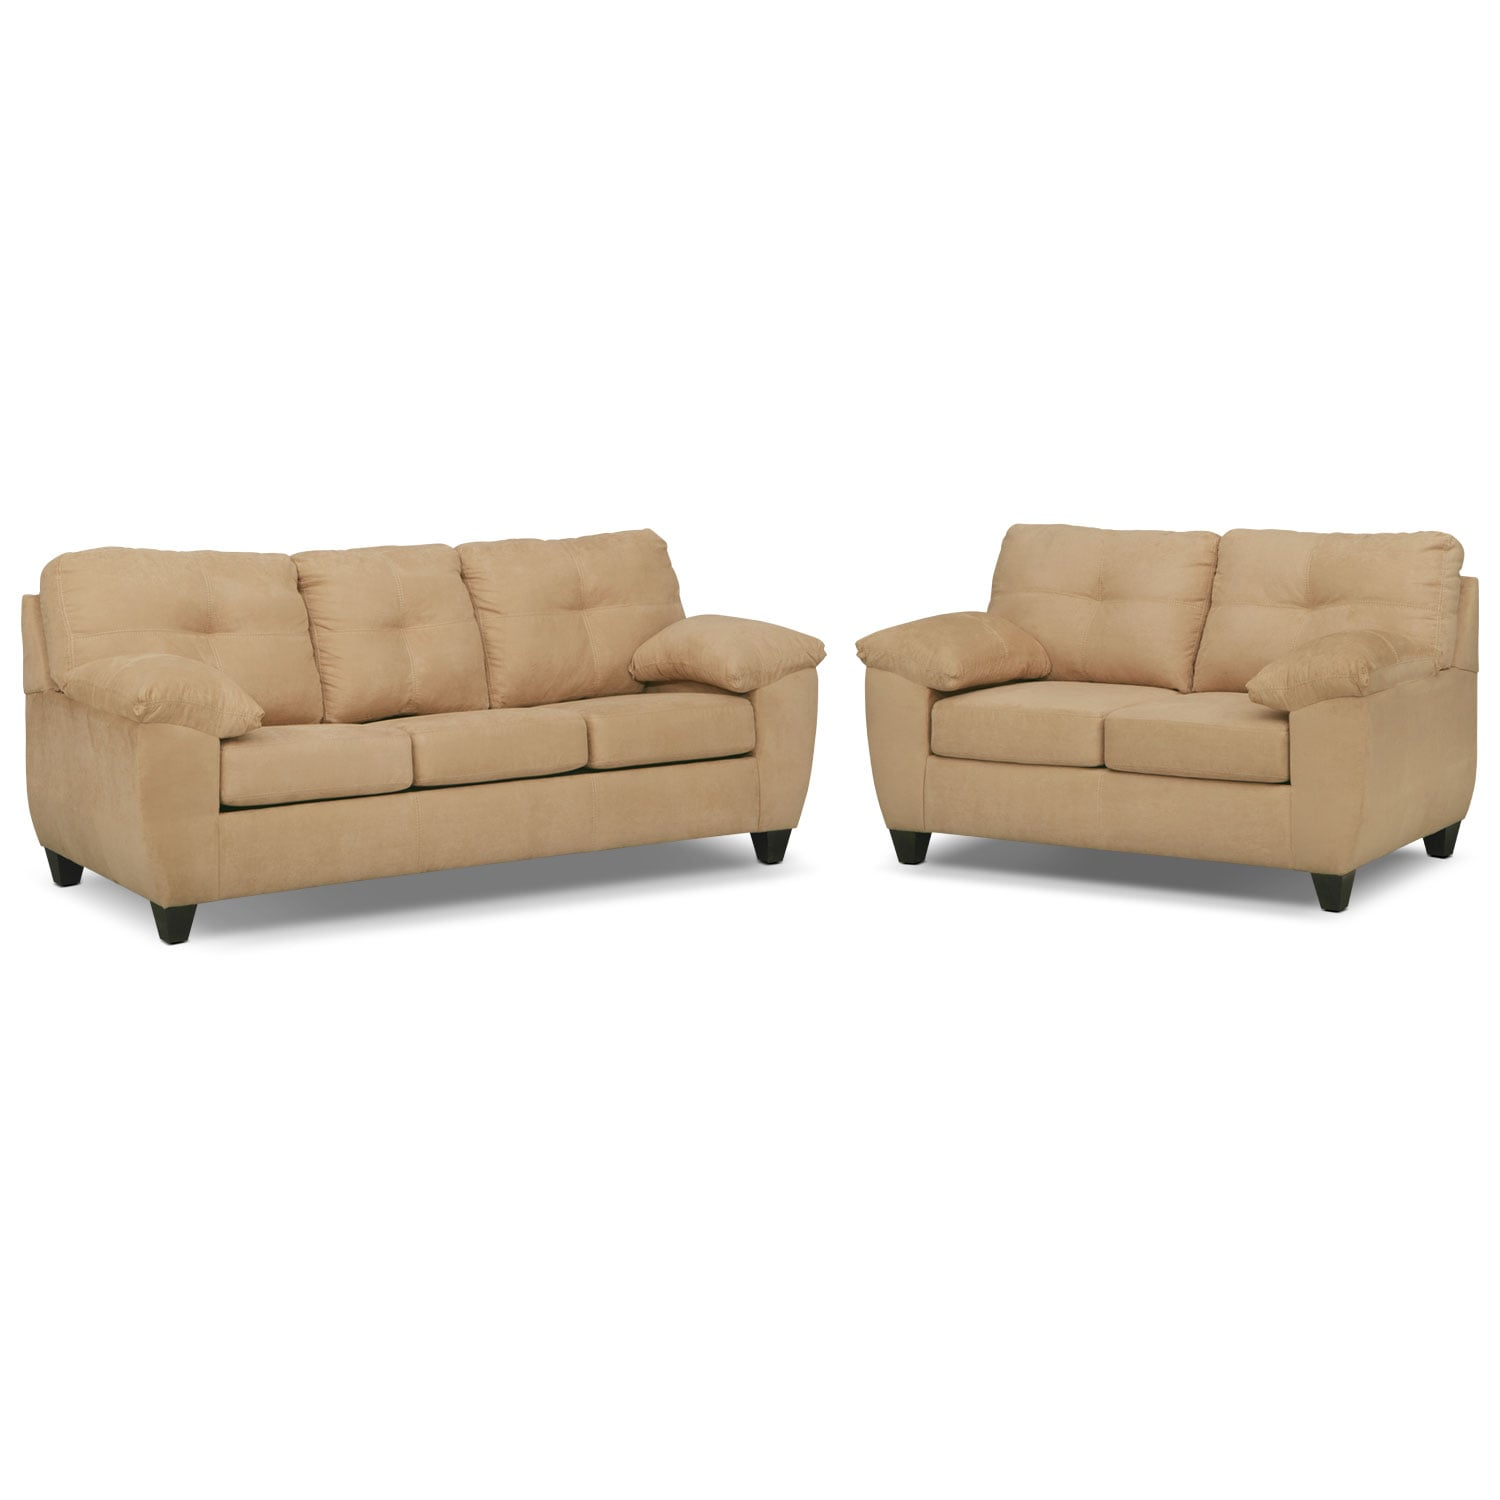 Living Room Furniture - Rialto Camel 2 Pc. Sleeper Living Room- Memory Foam